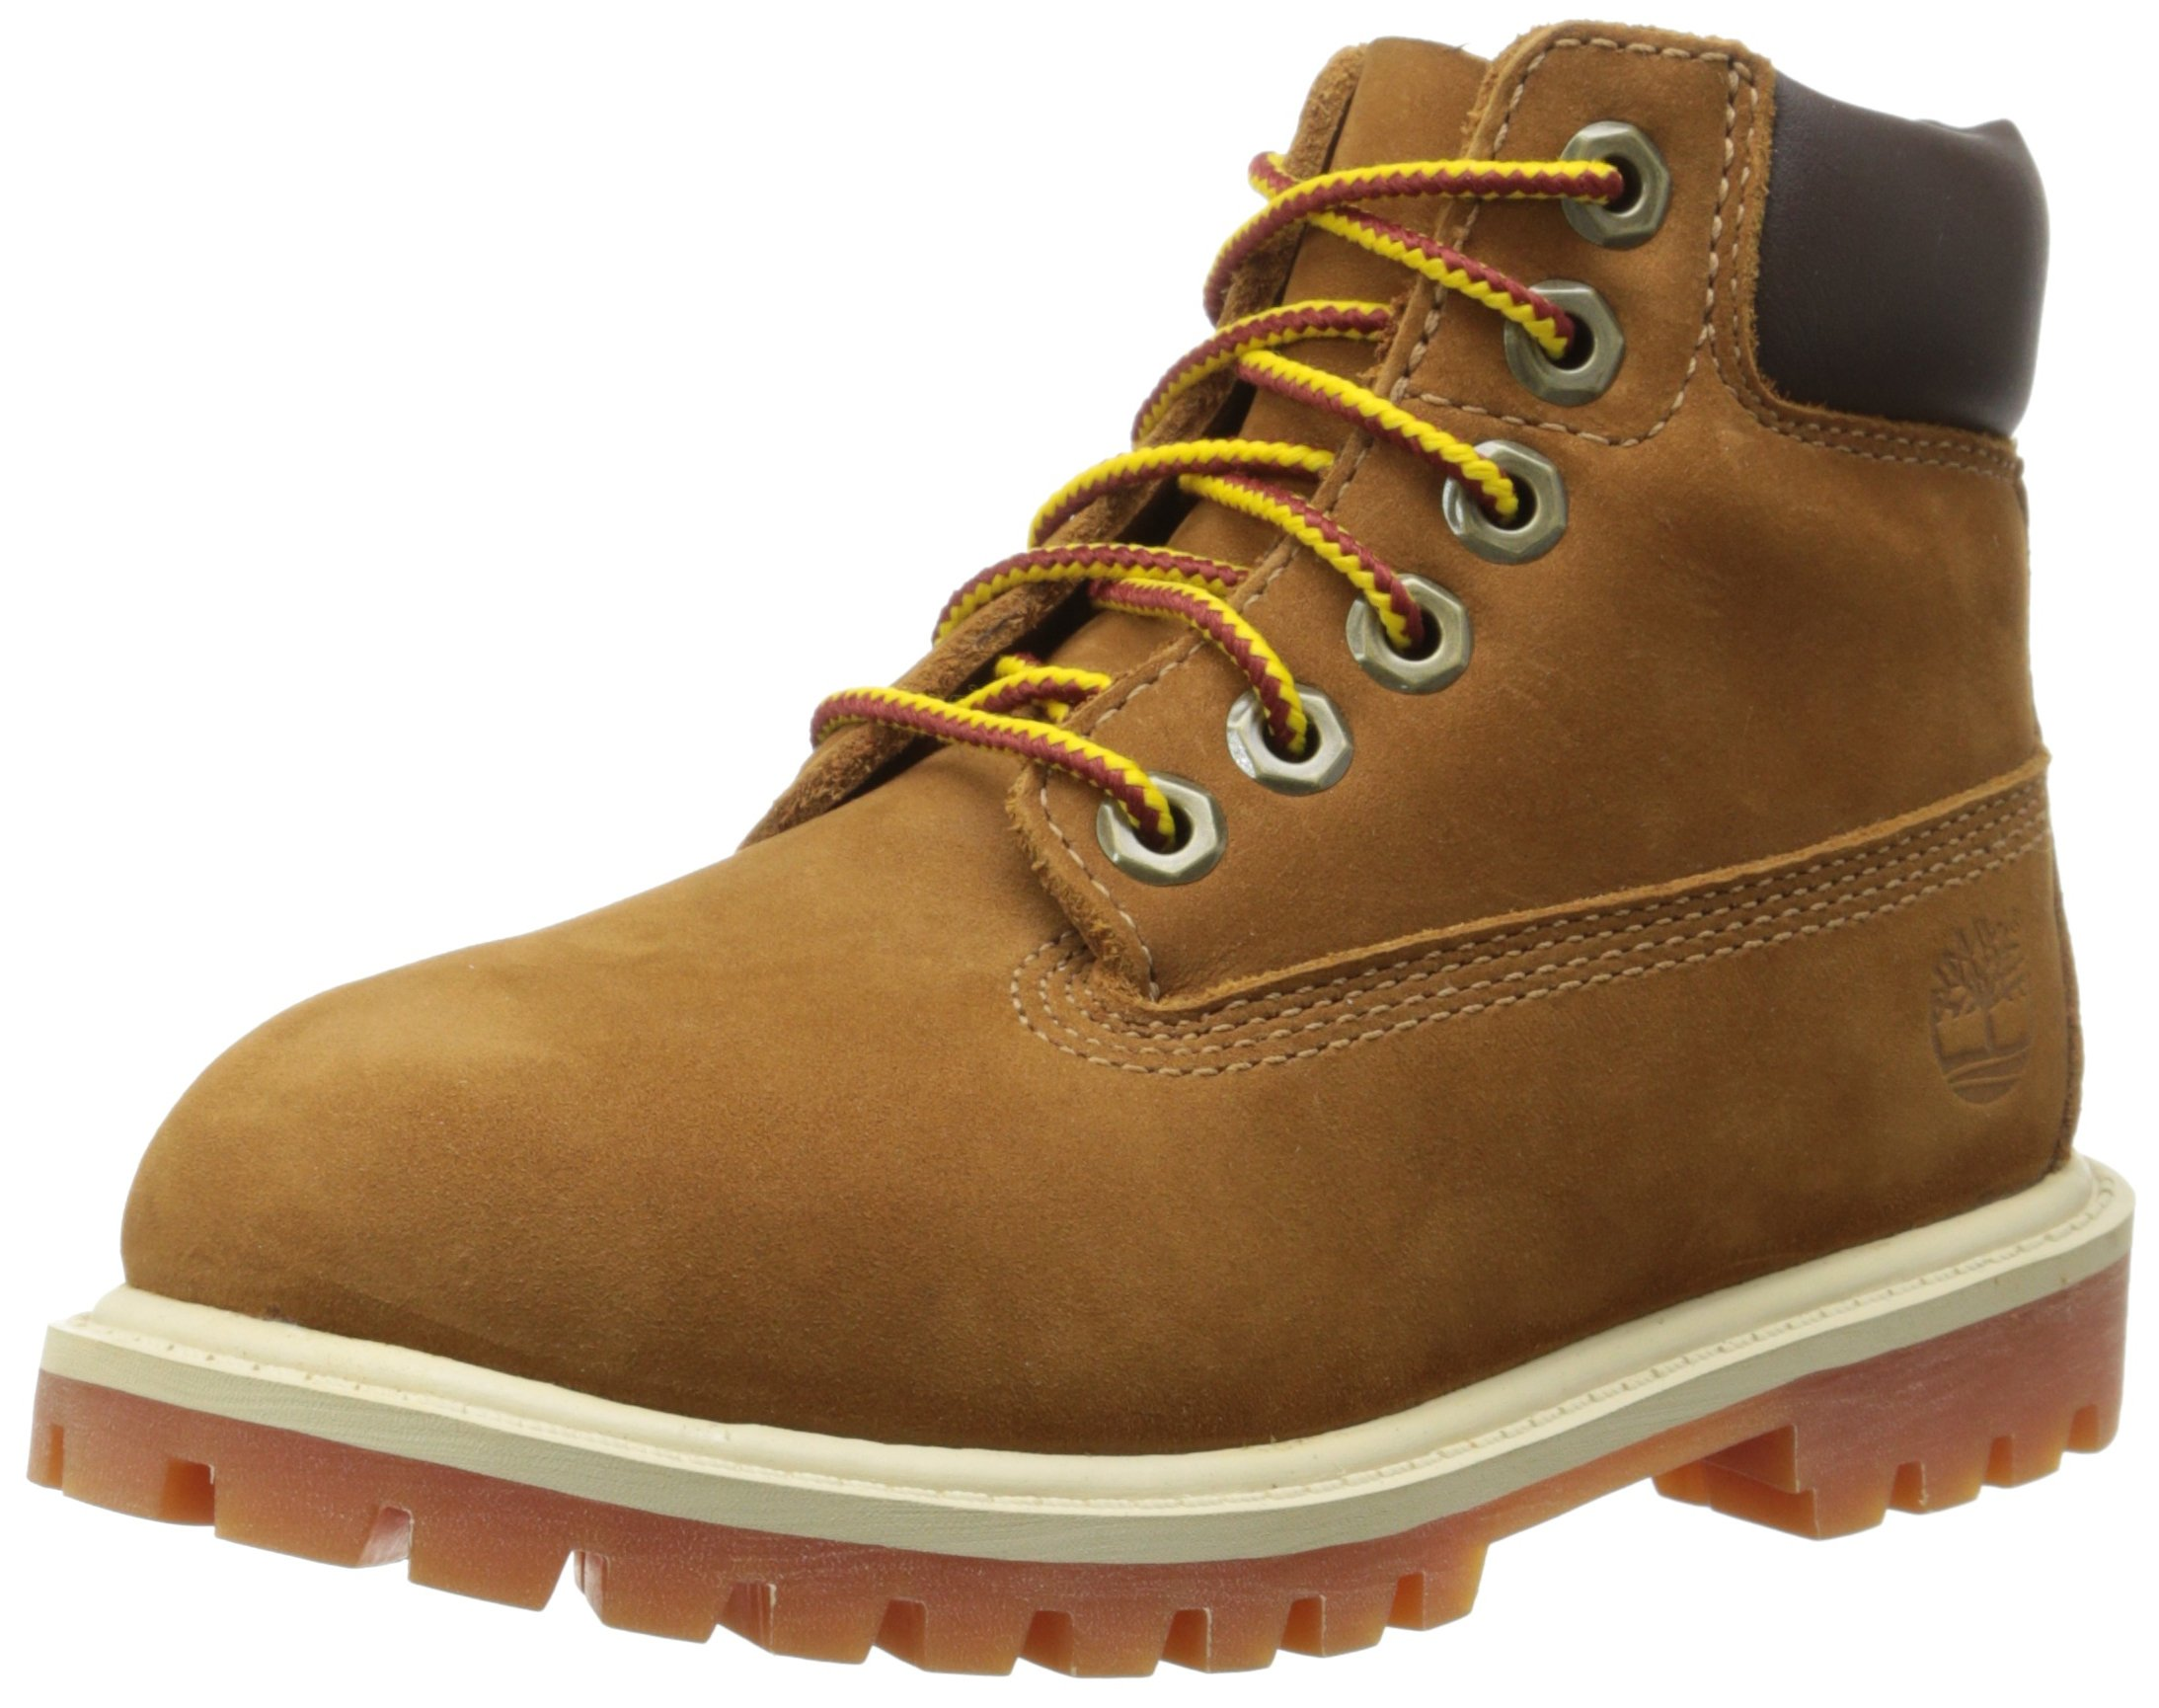 Timberland 6'' C12907 Premium Waterproof Boot,Rust Nubuck/Honey,5.5 M US Big Kid by Timberland